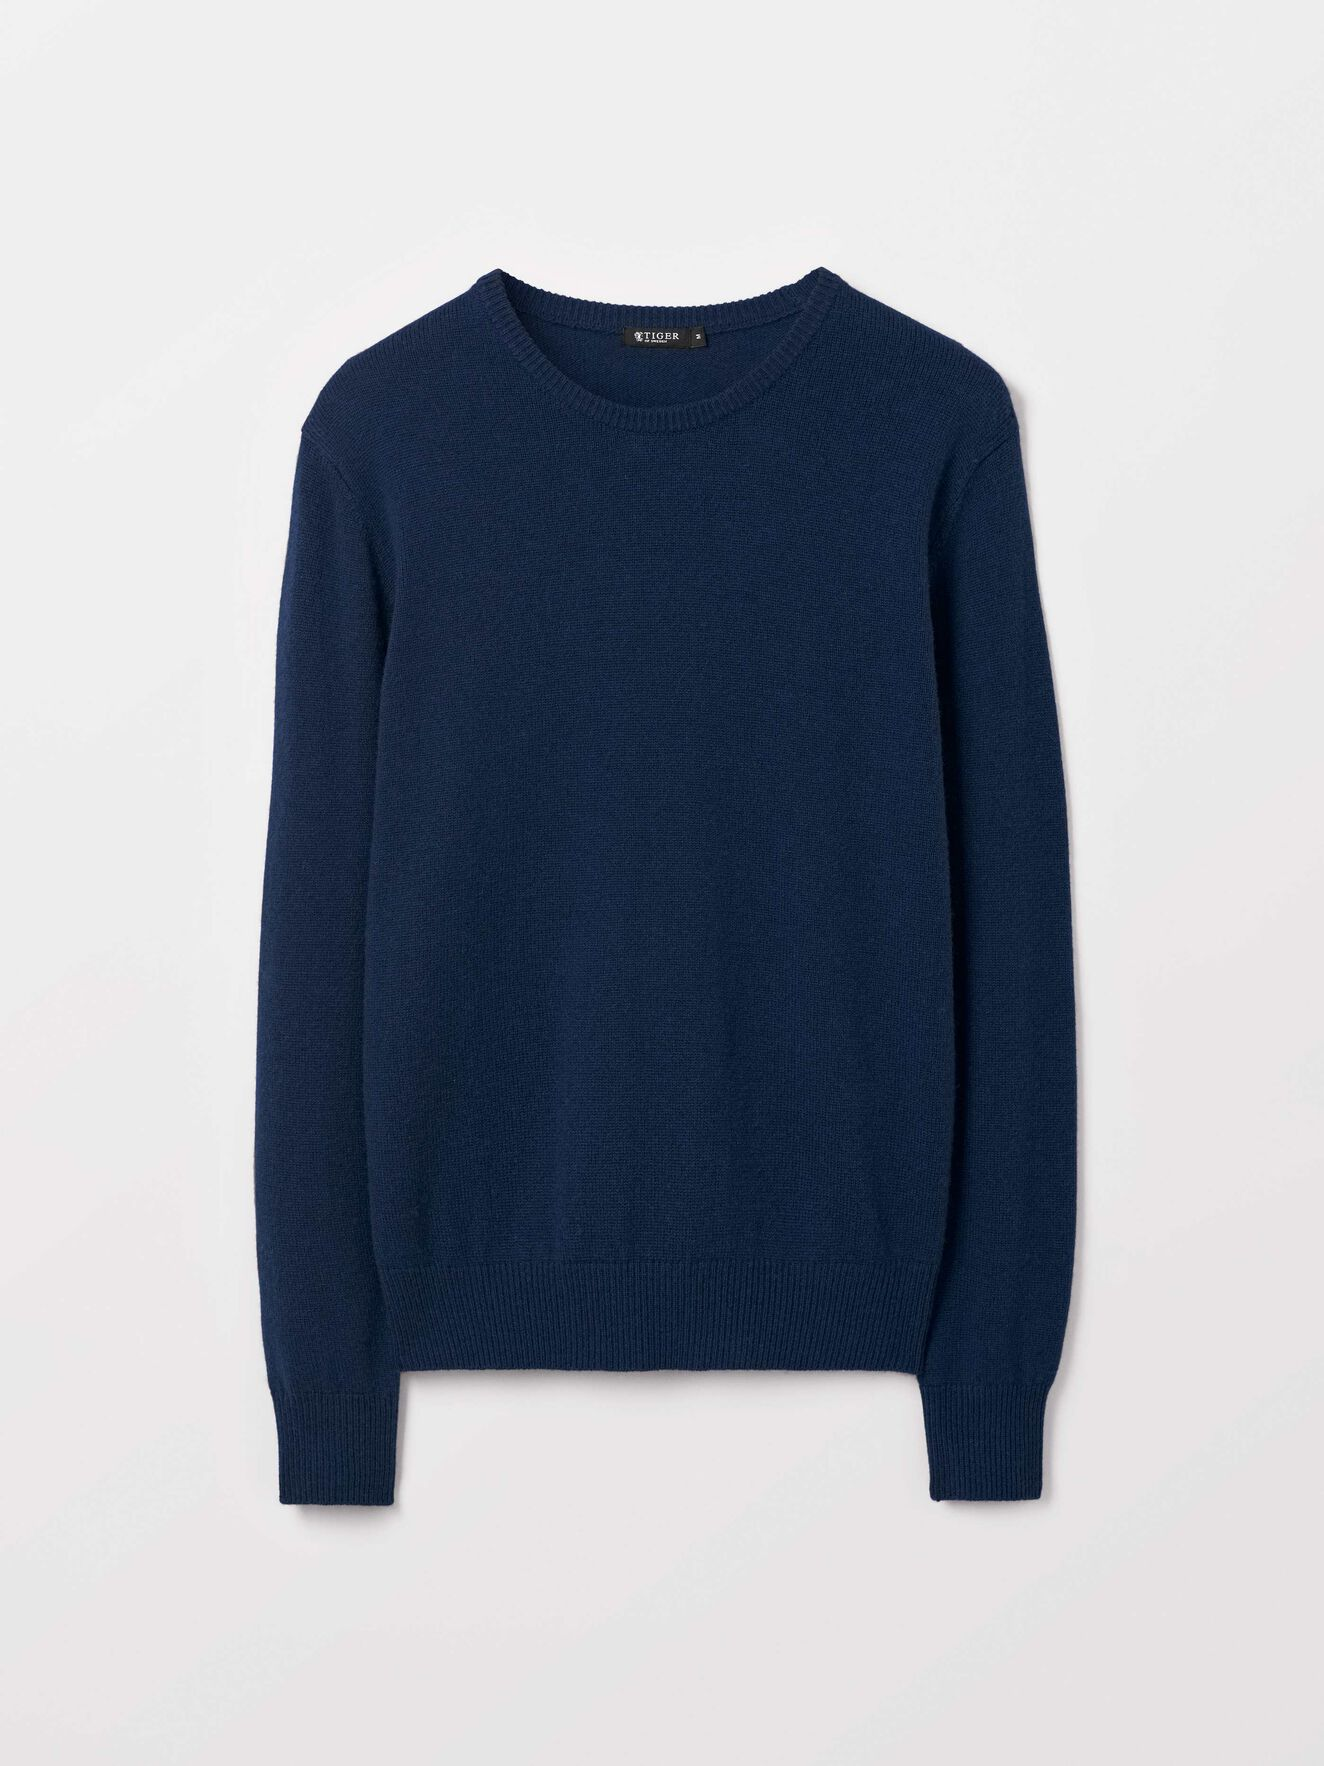 Nickol Pullover in Royal Blue from Tiger of Sweden